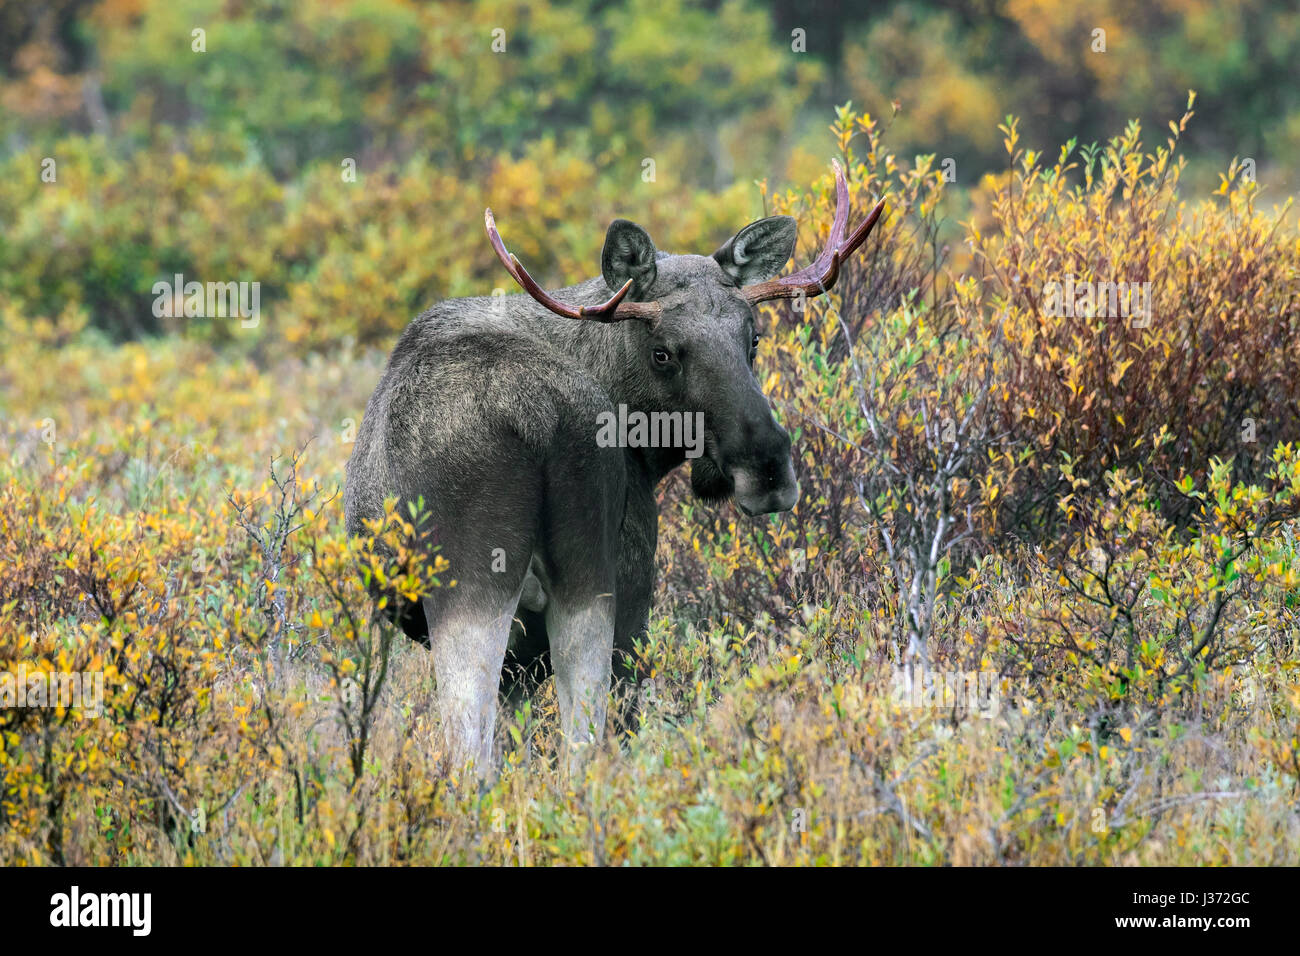 Moose (Alces alces) young bull with small antlers foraging among willow shrubs in moorland in autumn, Scandinavia - Stock Image